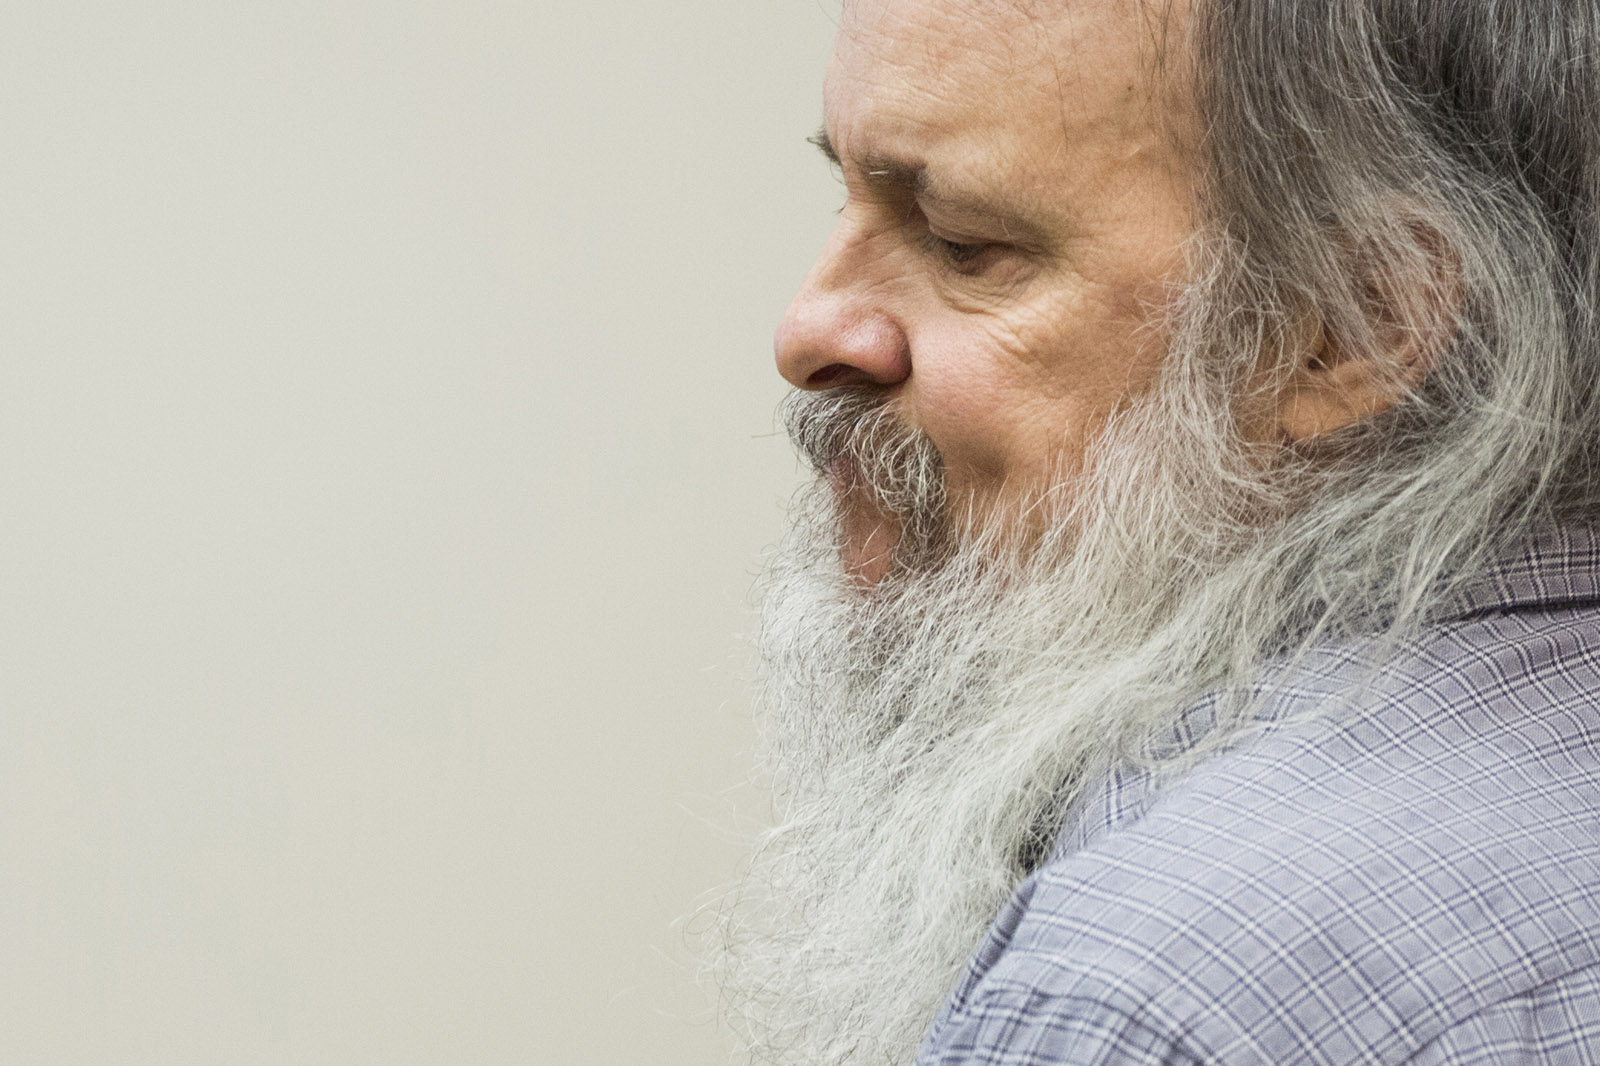 Photos: Charles Severance on trial